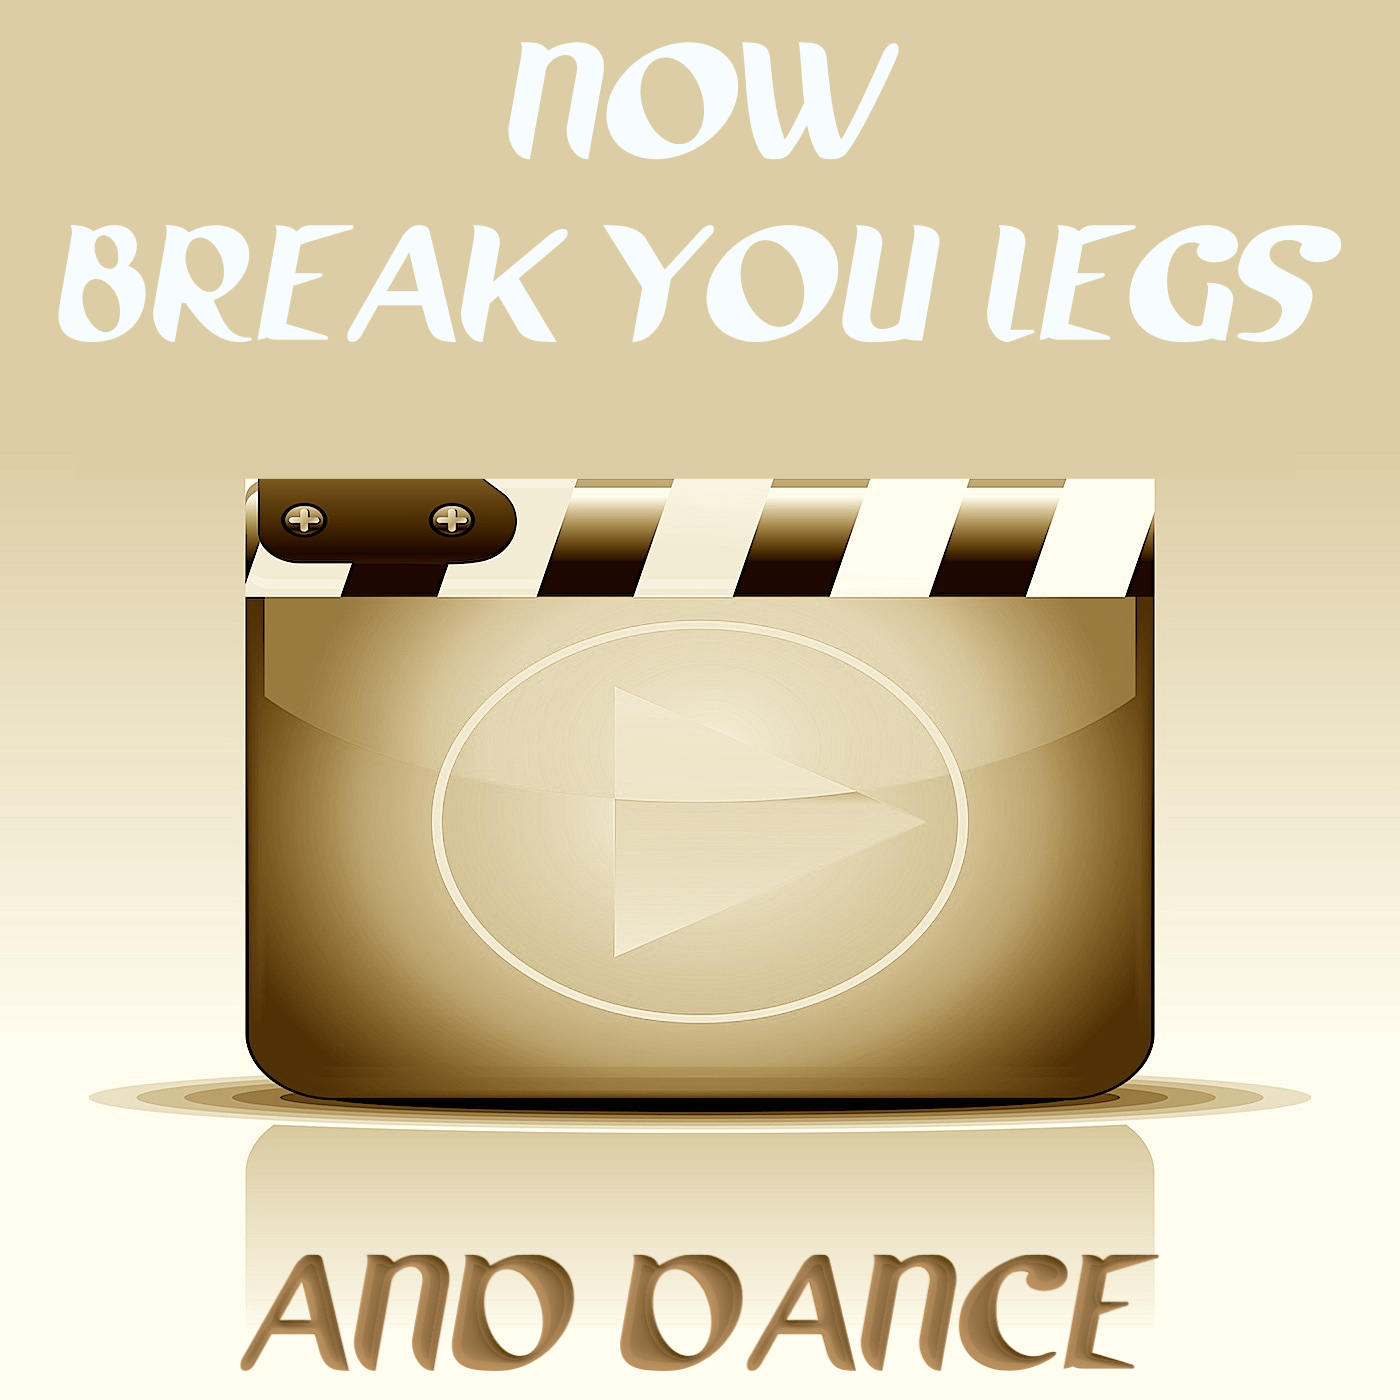 Now Break Your Legs & Dance